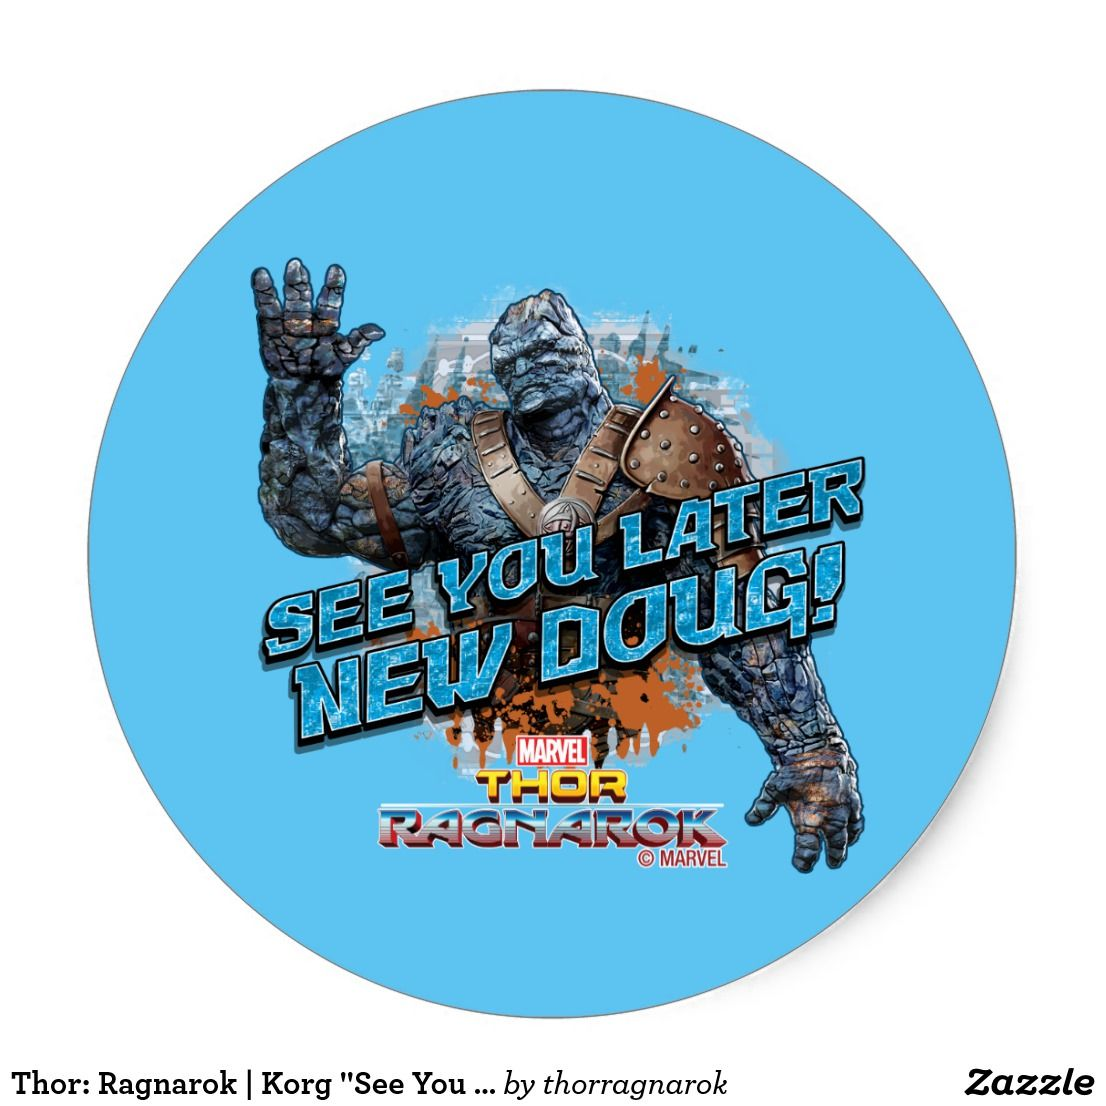 Thor Ragnarok Korg See You Later New Doug Classic Round Sticker Must Have Awesome Marvel Items Thor Marvel Marvelcomics Comi Thor Marvel Marvel Thor